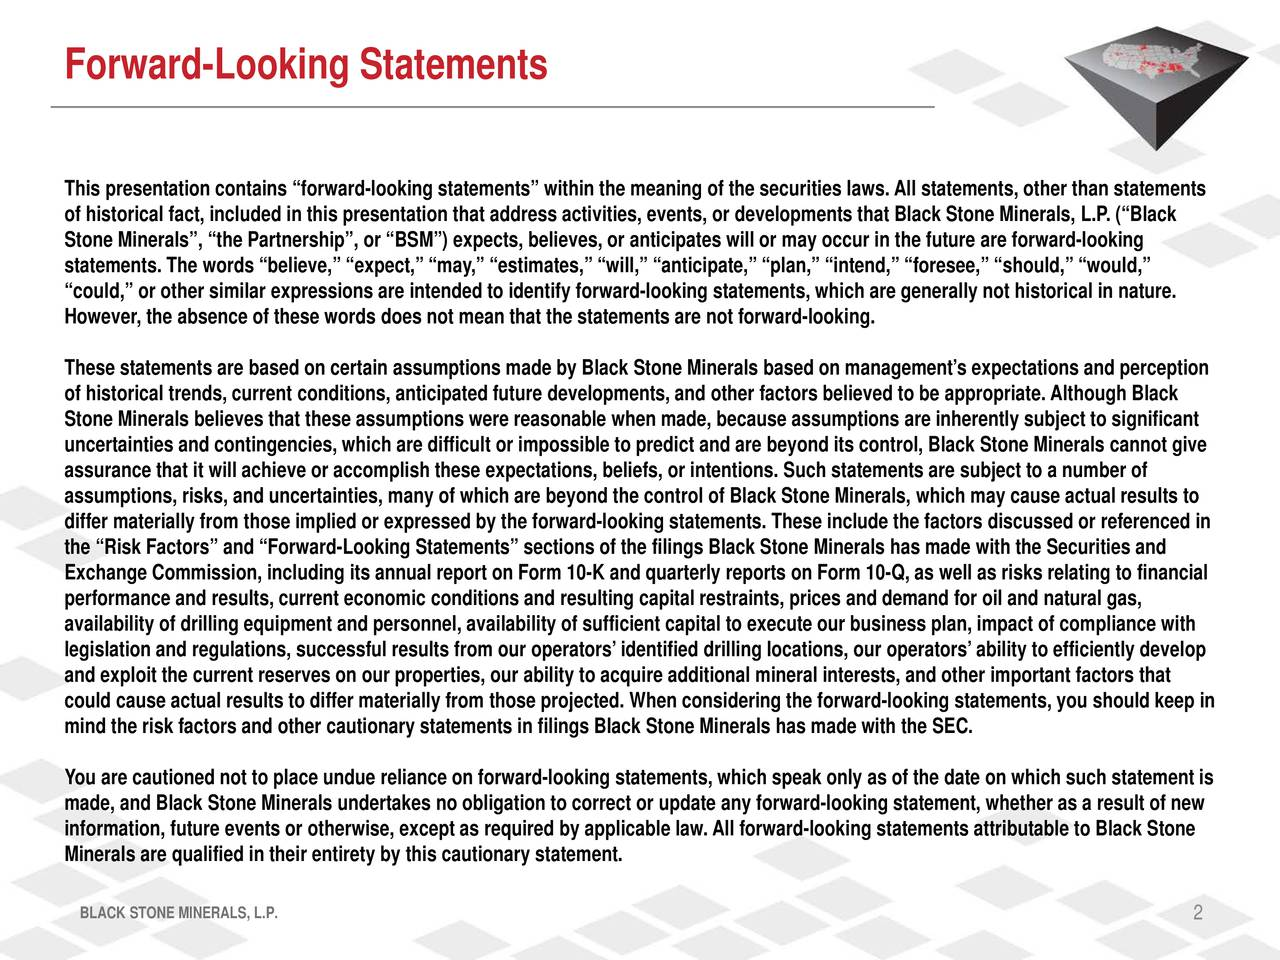 This presentation contains forward-looking statements within the meaning of the securities laws.All statements, other than statements of historical fact, included in this presentation that address activities, events, or developments that Black Stone Minerals, L.P. (Black Stone Minerals, the Partnership, or BSM) expects, believes, or anticipates will or may occur in the future are forward-looking statements. The words believe, expect, may, estimates, will, anticipate, plan, intend, foresee, should,  would, could, or other similar expressions are intended to identify forward-looking statements, which are generally not historical in nature. However, the absence of these words does not mean that the statements are not forward -looking. These statements are based on certain assumptions made by Black Stone Minerals based on managements expectations and perception of historical trends, current conditions, anticipated futuredevelopments, and other factors believed to be appropriate. Although Black Stone Minerals believes that these assumptions were reasonable when made, because assumptions are inherently subject to significant uncertainties and contingencies, which are difficult or impossible to predict and are beyond its control, Black Stone Minerals cannot give assurance that it will achieve or accomplish these expectations, beliefs, or intentions. Such statements are subject to a number of assumptions, risks, and uncertainties, many of which are beyond the control of BlackStone Minerals, which may cause actual results to differ materially from those implied or expressed by the forward-looking statements. These include the factors discussed or referenced in the Risk Factors and Forward-Looking Statements sections of the filings Black Stone Minerals has made with the Securities and Exchange Commission, including its annual report on Form 10-K and quarterly reports on Form 10-Q, as well as risks relating to financial performance and results, current economic conditions and 